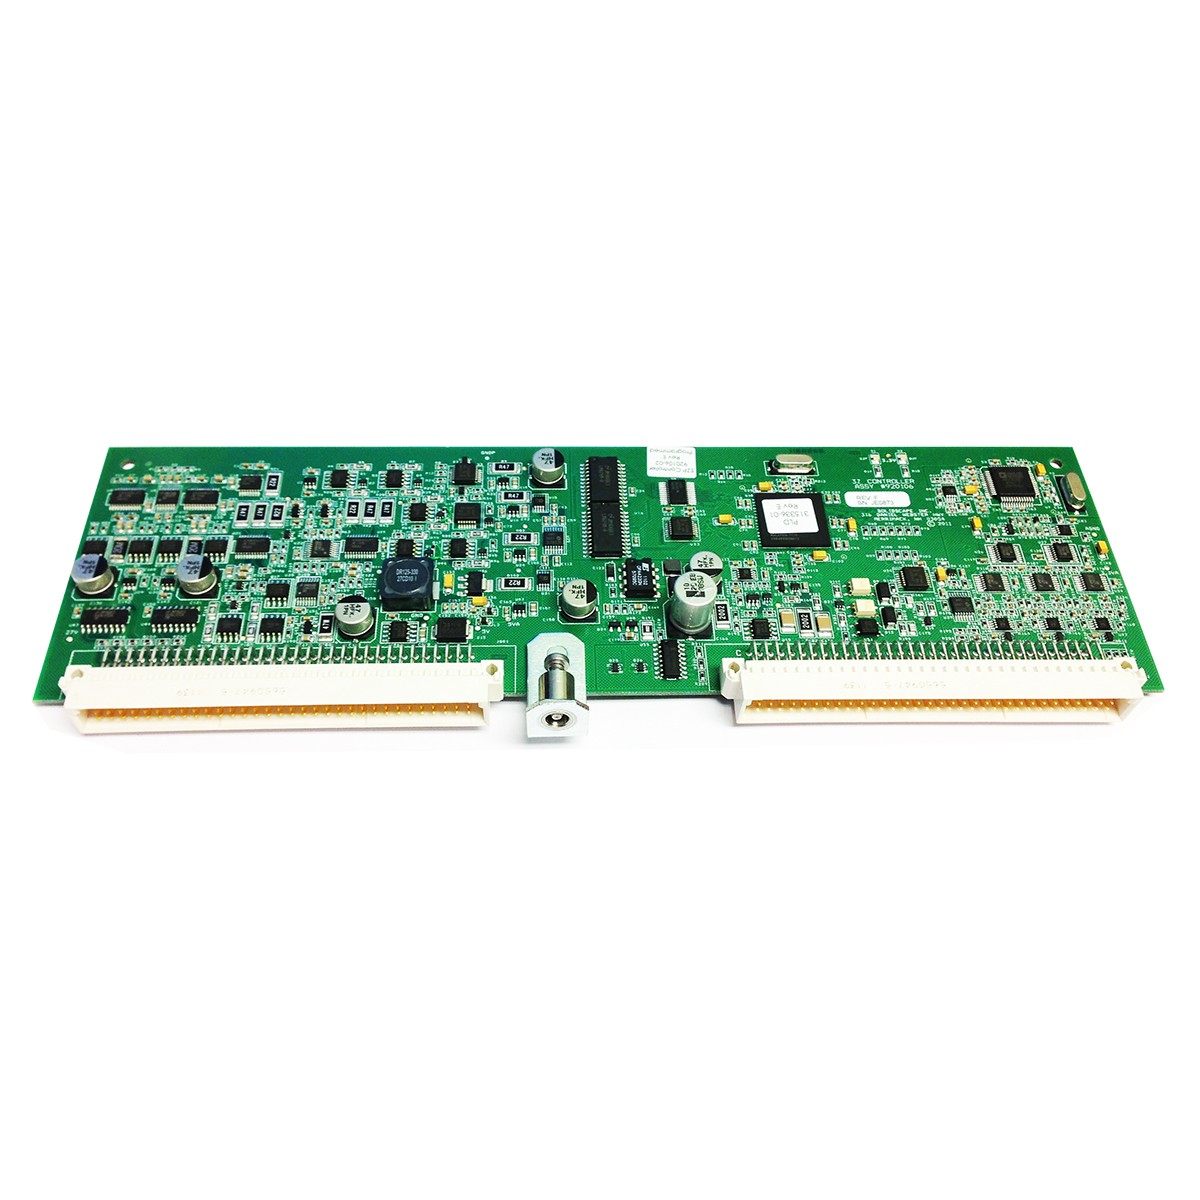 Solidscape 3Z Controller Card - All Serial Numbers